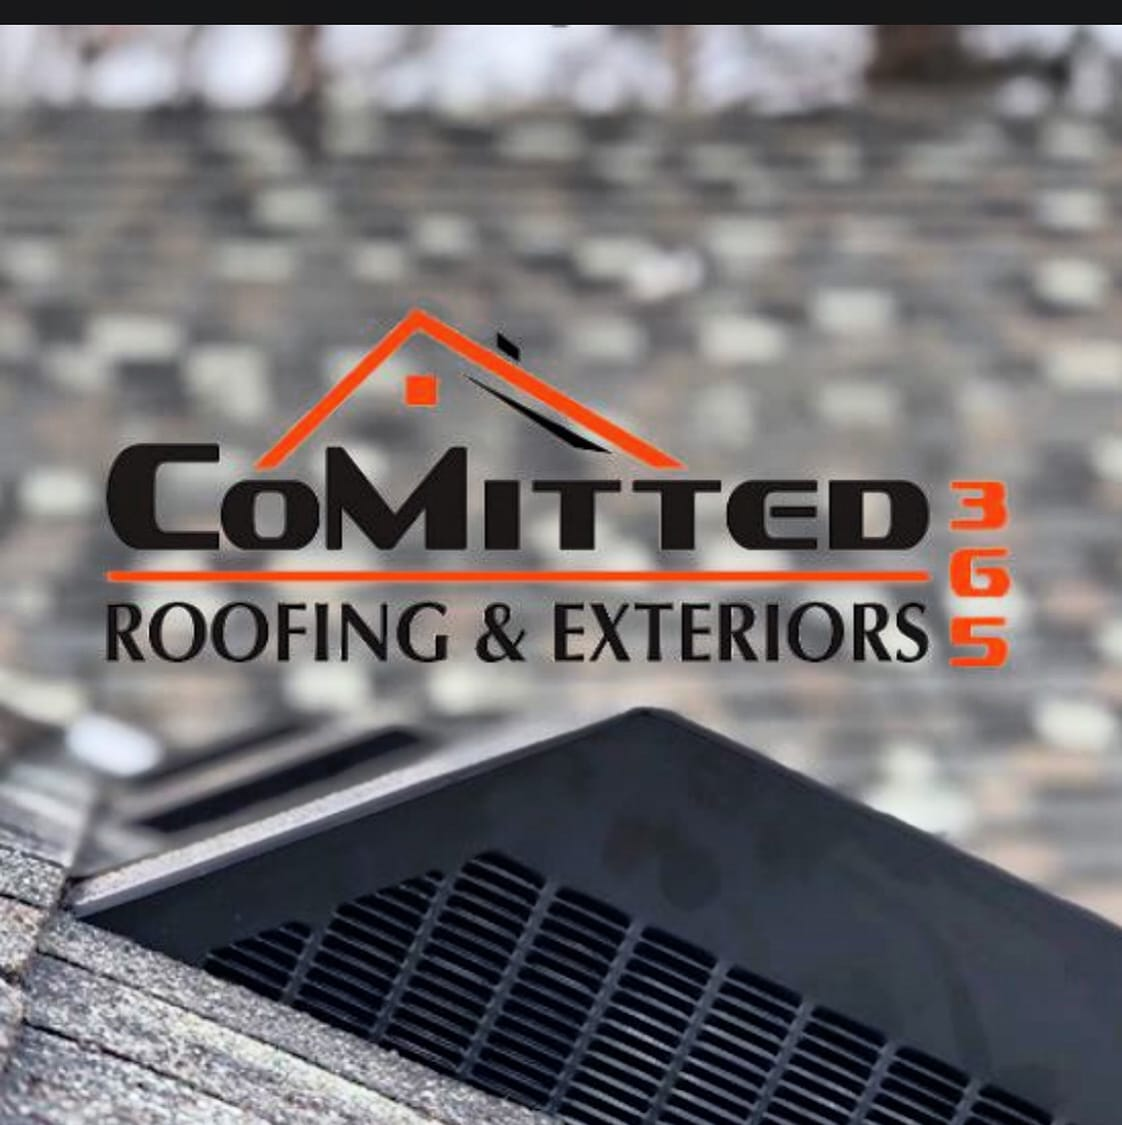 CoMitted 365 Roofing & Exteriors